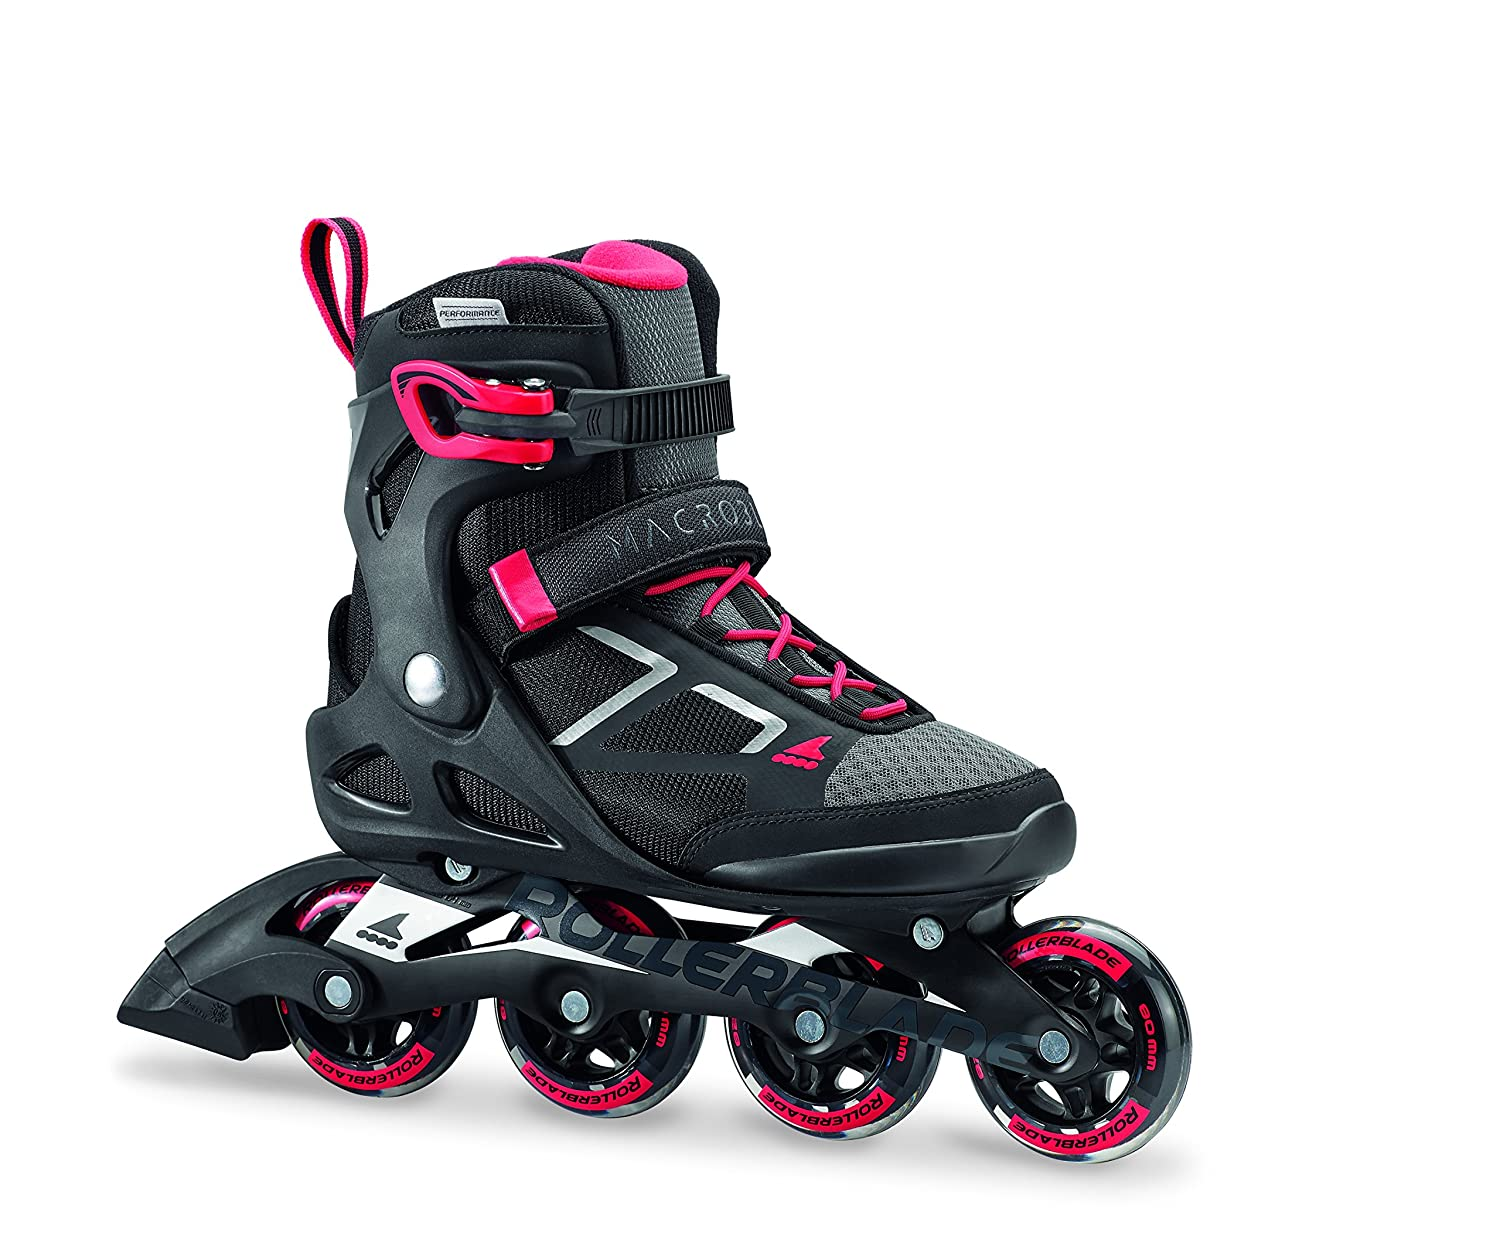 30db1b2a88c Amazon.com : Rollerblade Macroblade 80 Women's Adult Fitness Inline Skate,  Black and Pink, Performance Inline Skates : Sports & Outdoors